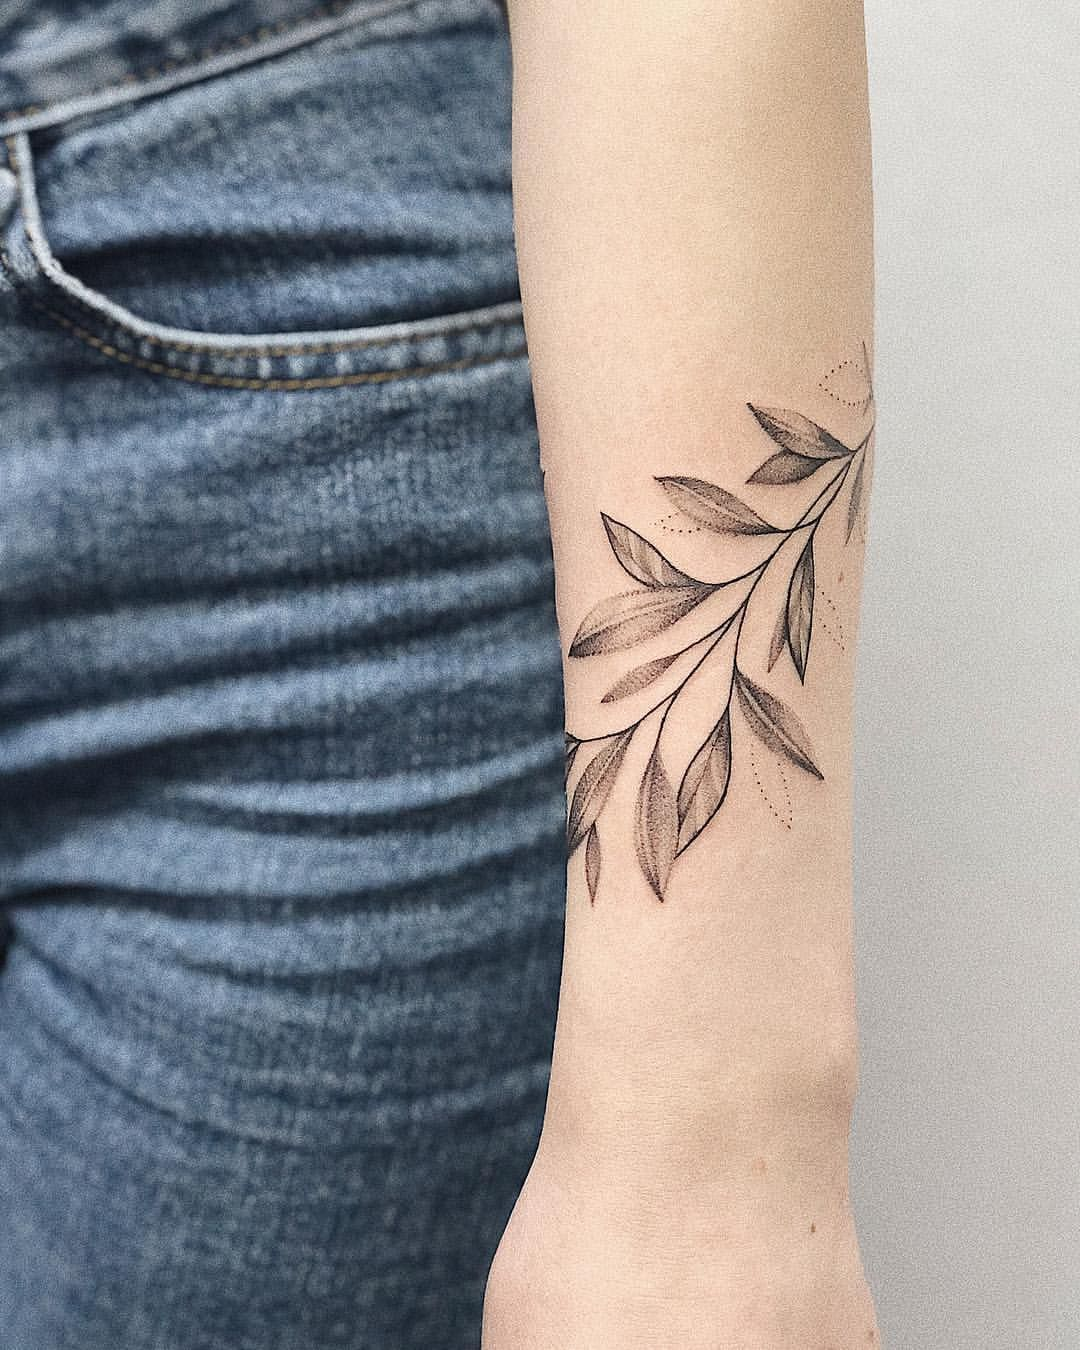 "Anastasia Seryogova on Instagram: ""🌿 - #tattooleaves #leaves #tattoogirl #tattooideas #tattooblack #flowers"""